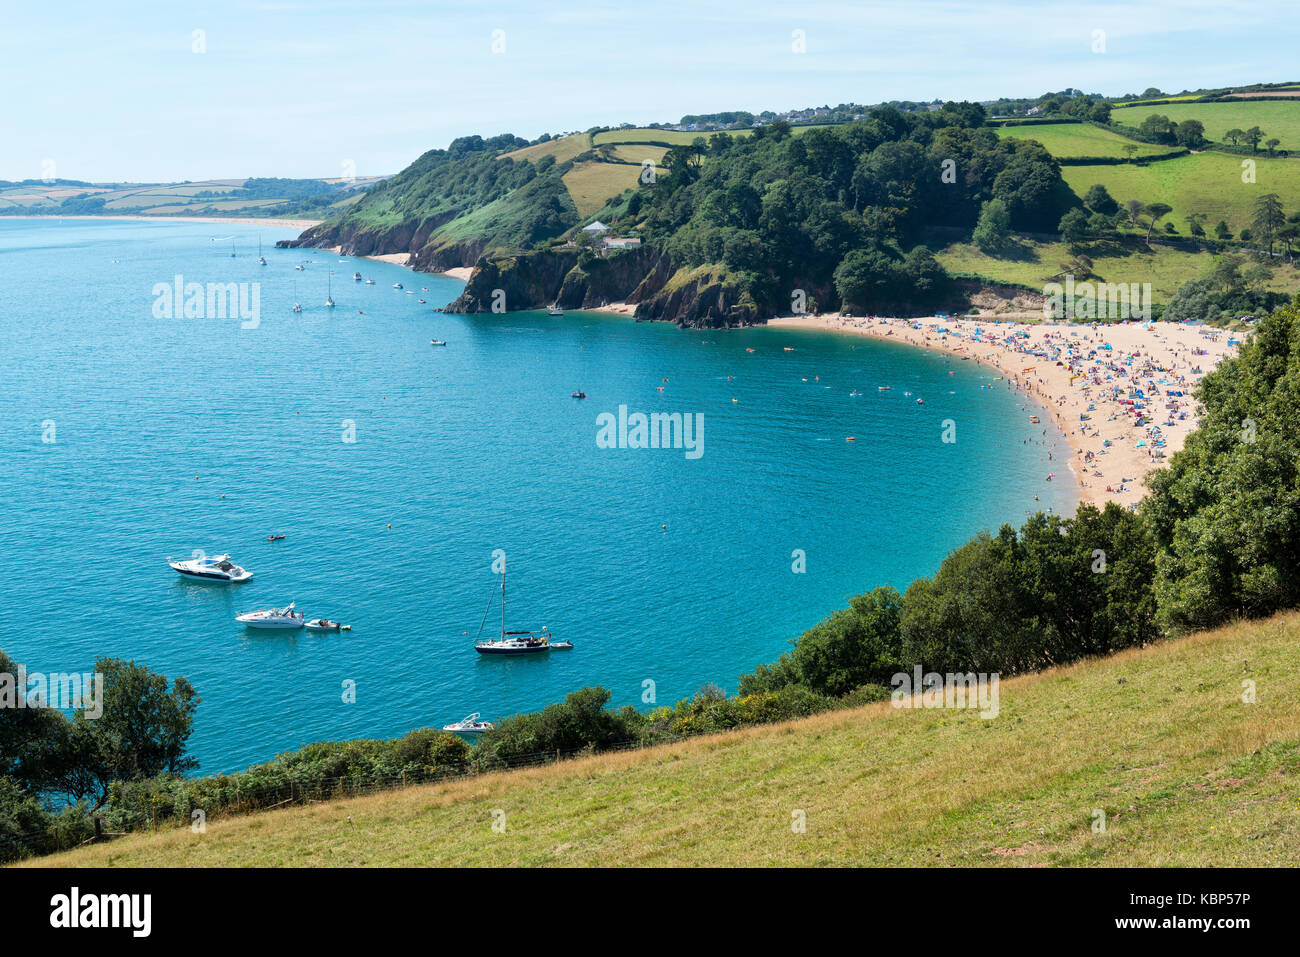 Crowded sandy beach at Blackpool Sands shot from Stoke Fleming with pleasure craft in the blue waters of the bay - Stock Image